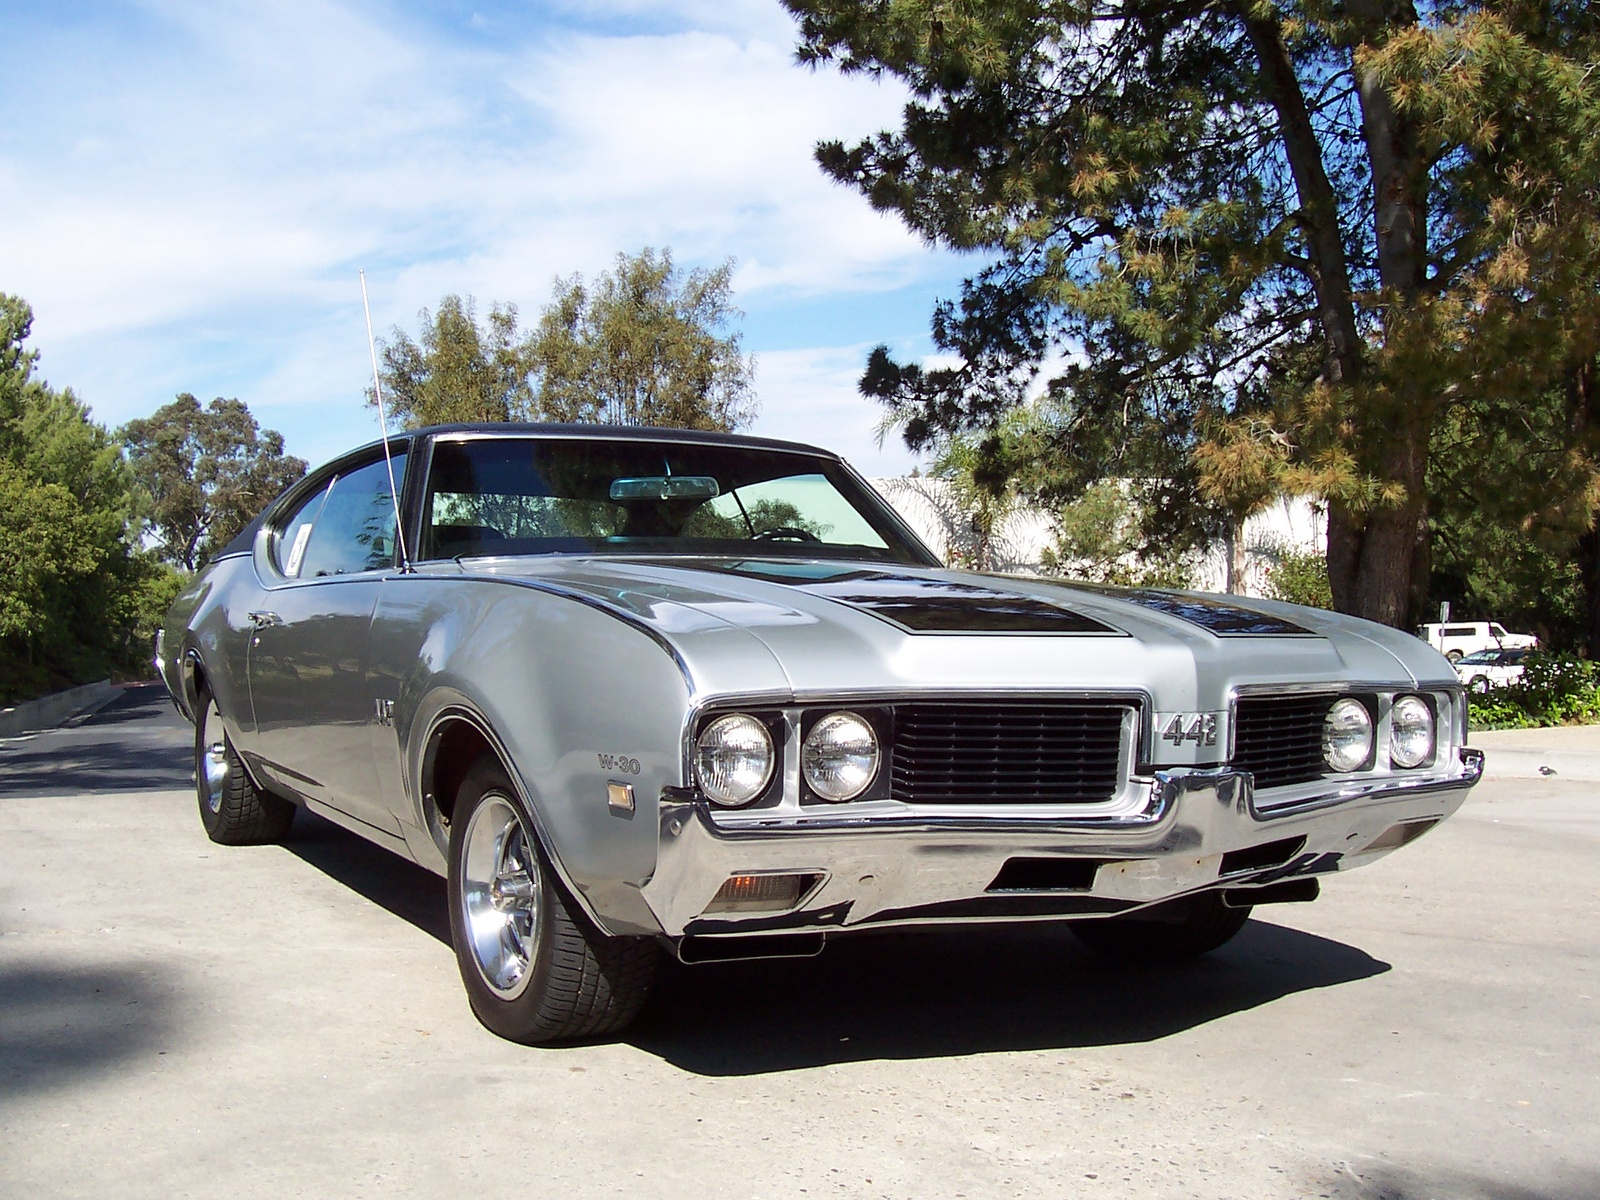 1969 cutlass olds Oldsmobile cutlass 1969 - find out the correct alloy wheel fitment, pcd, offset and such specs as bolt pattern, thread size(thd), center bore(cb) for oldsmobile cutlass 1969.